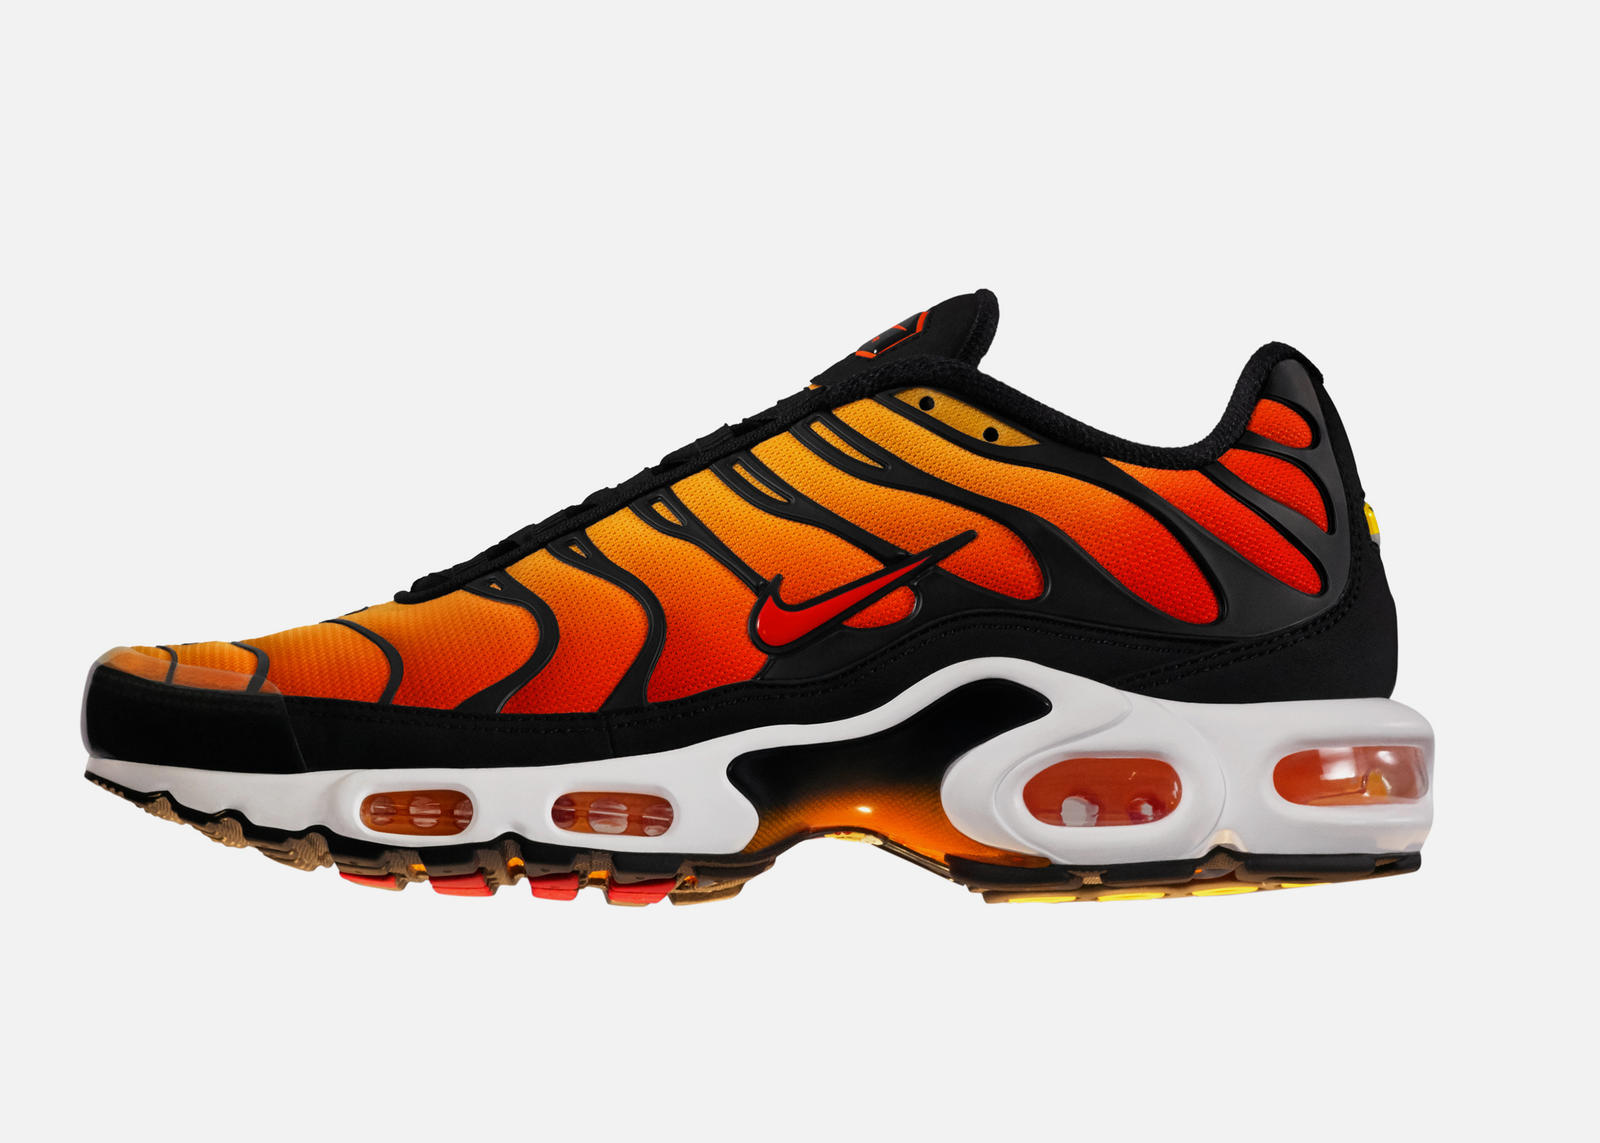 531def6c8d The Untold Story of the Nike Air Max Plus 19